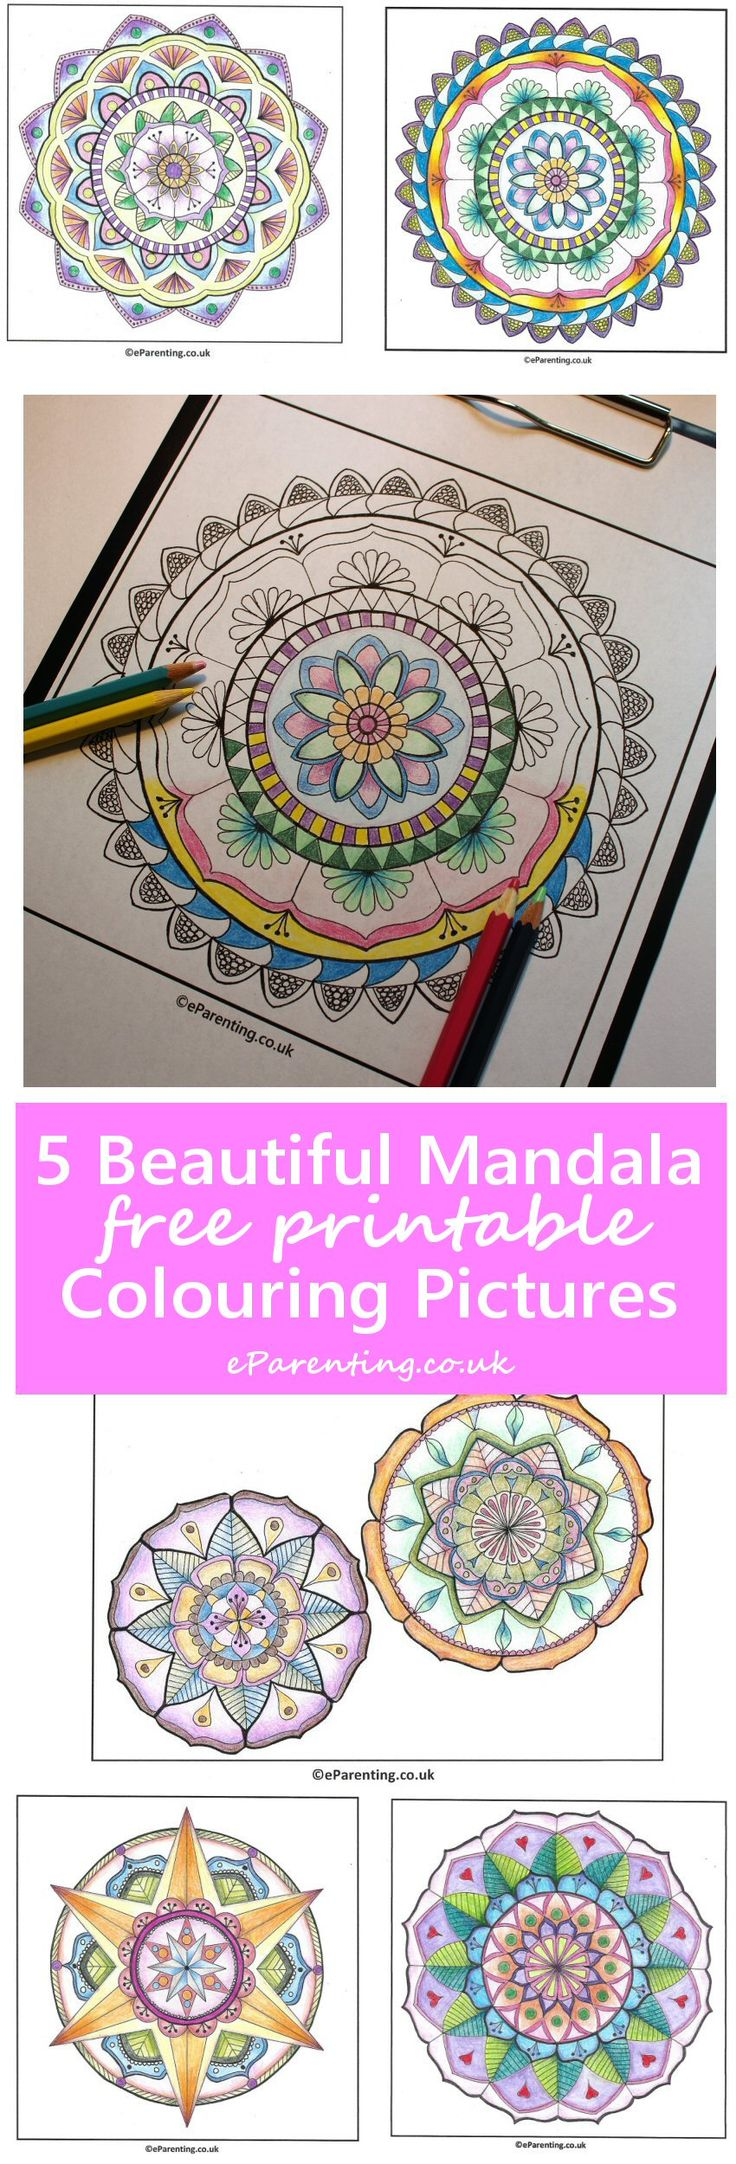 Free printable coloring pages uk - 5 Beautiful Mandala Colouring Pictures Free Printable Adult Colouring Pictures